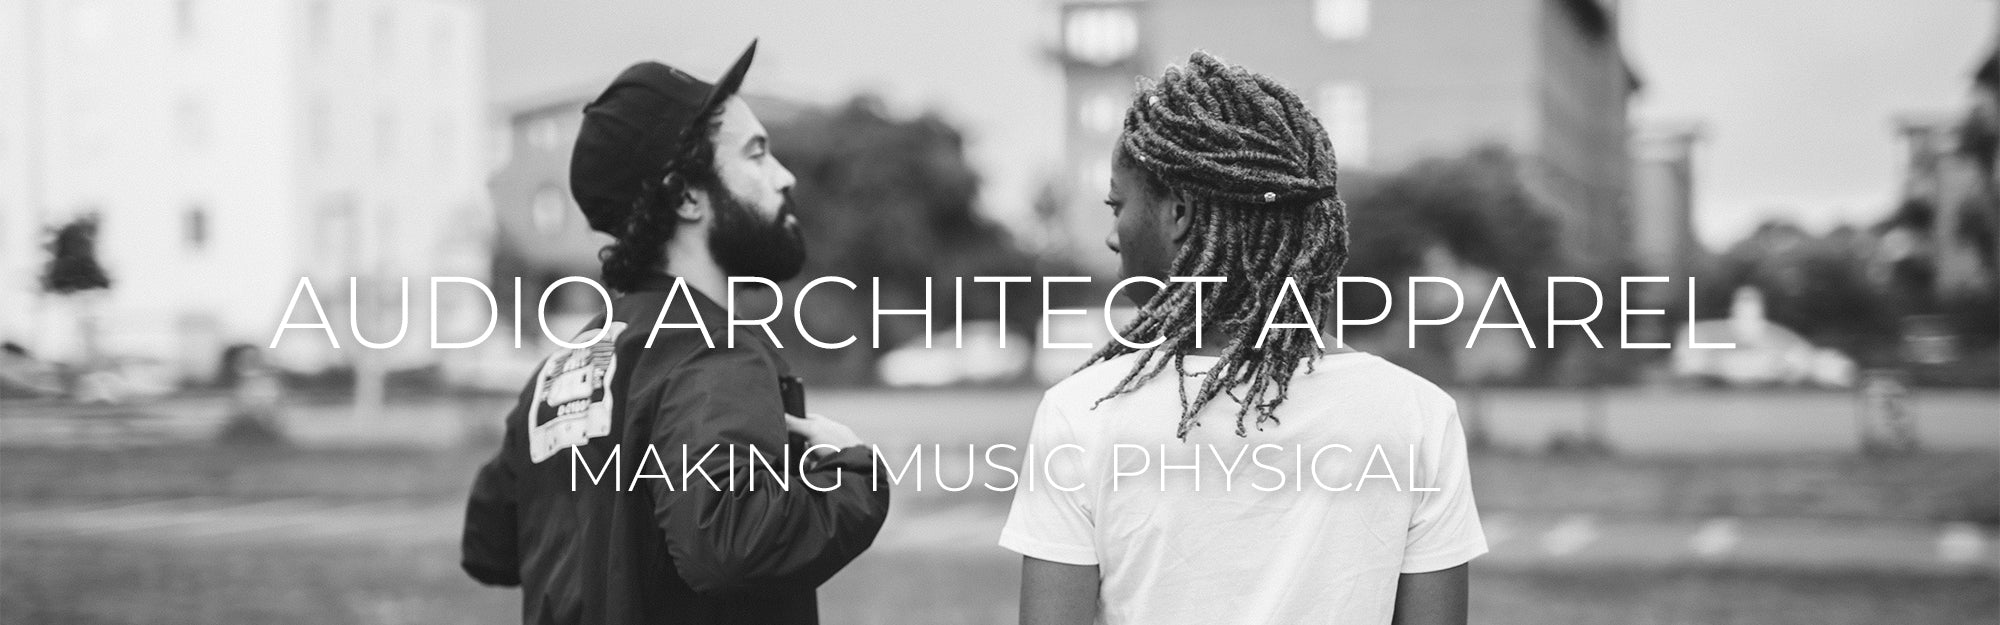 Audio Architect Apparel Music in Every Thread